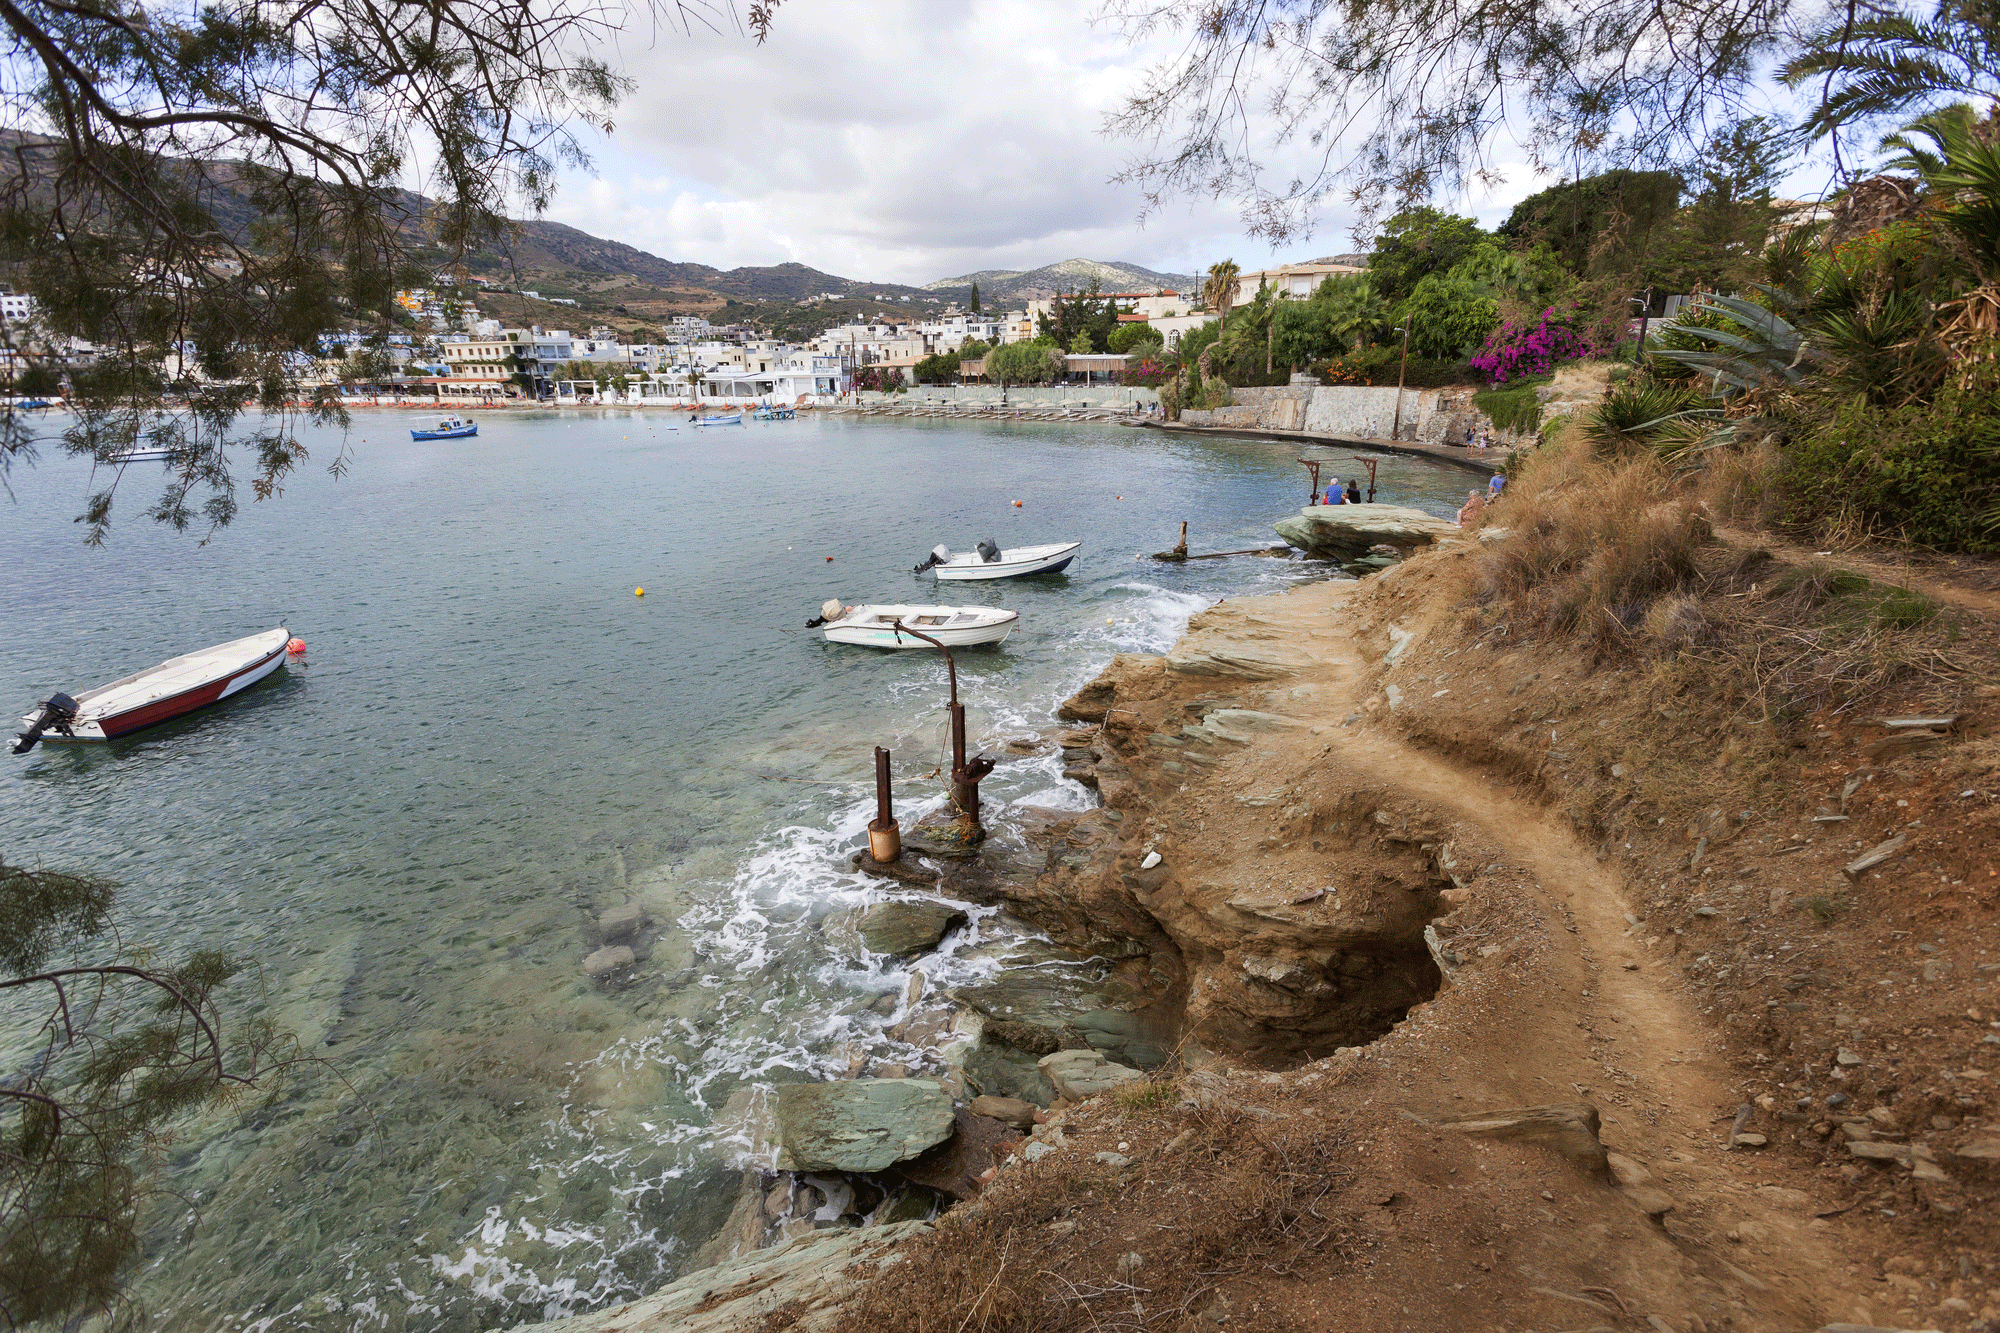 In Agia Pelagia, Natural Beauty and a Greek Orthodox Landmark